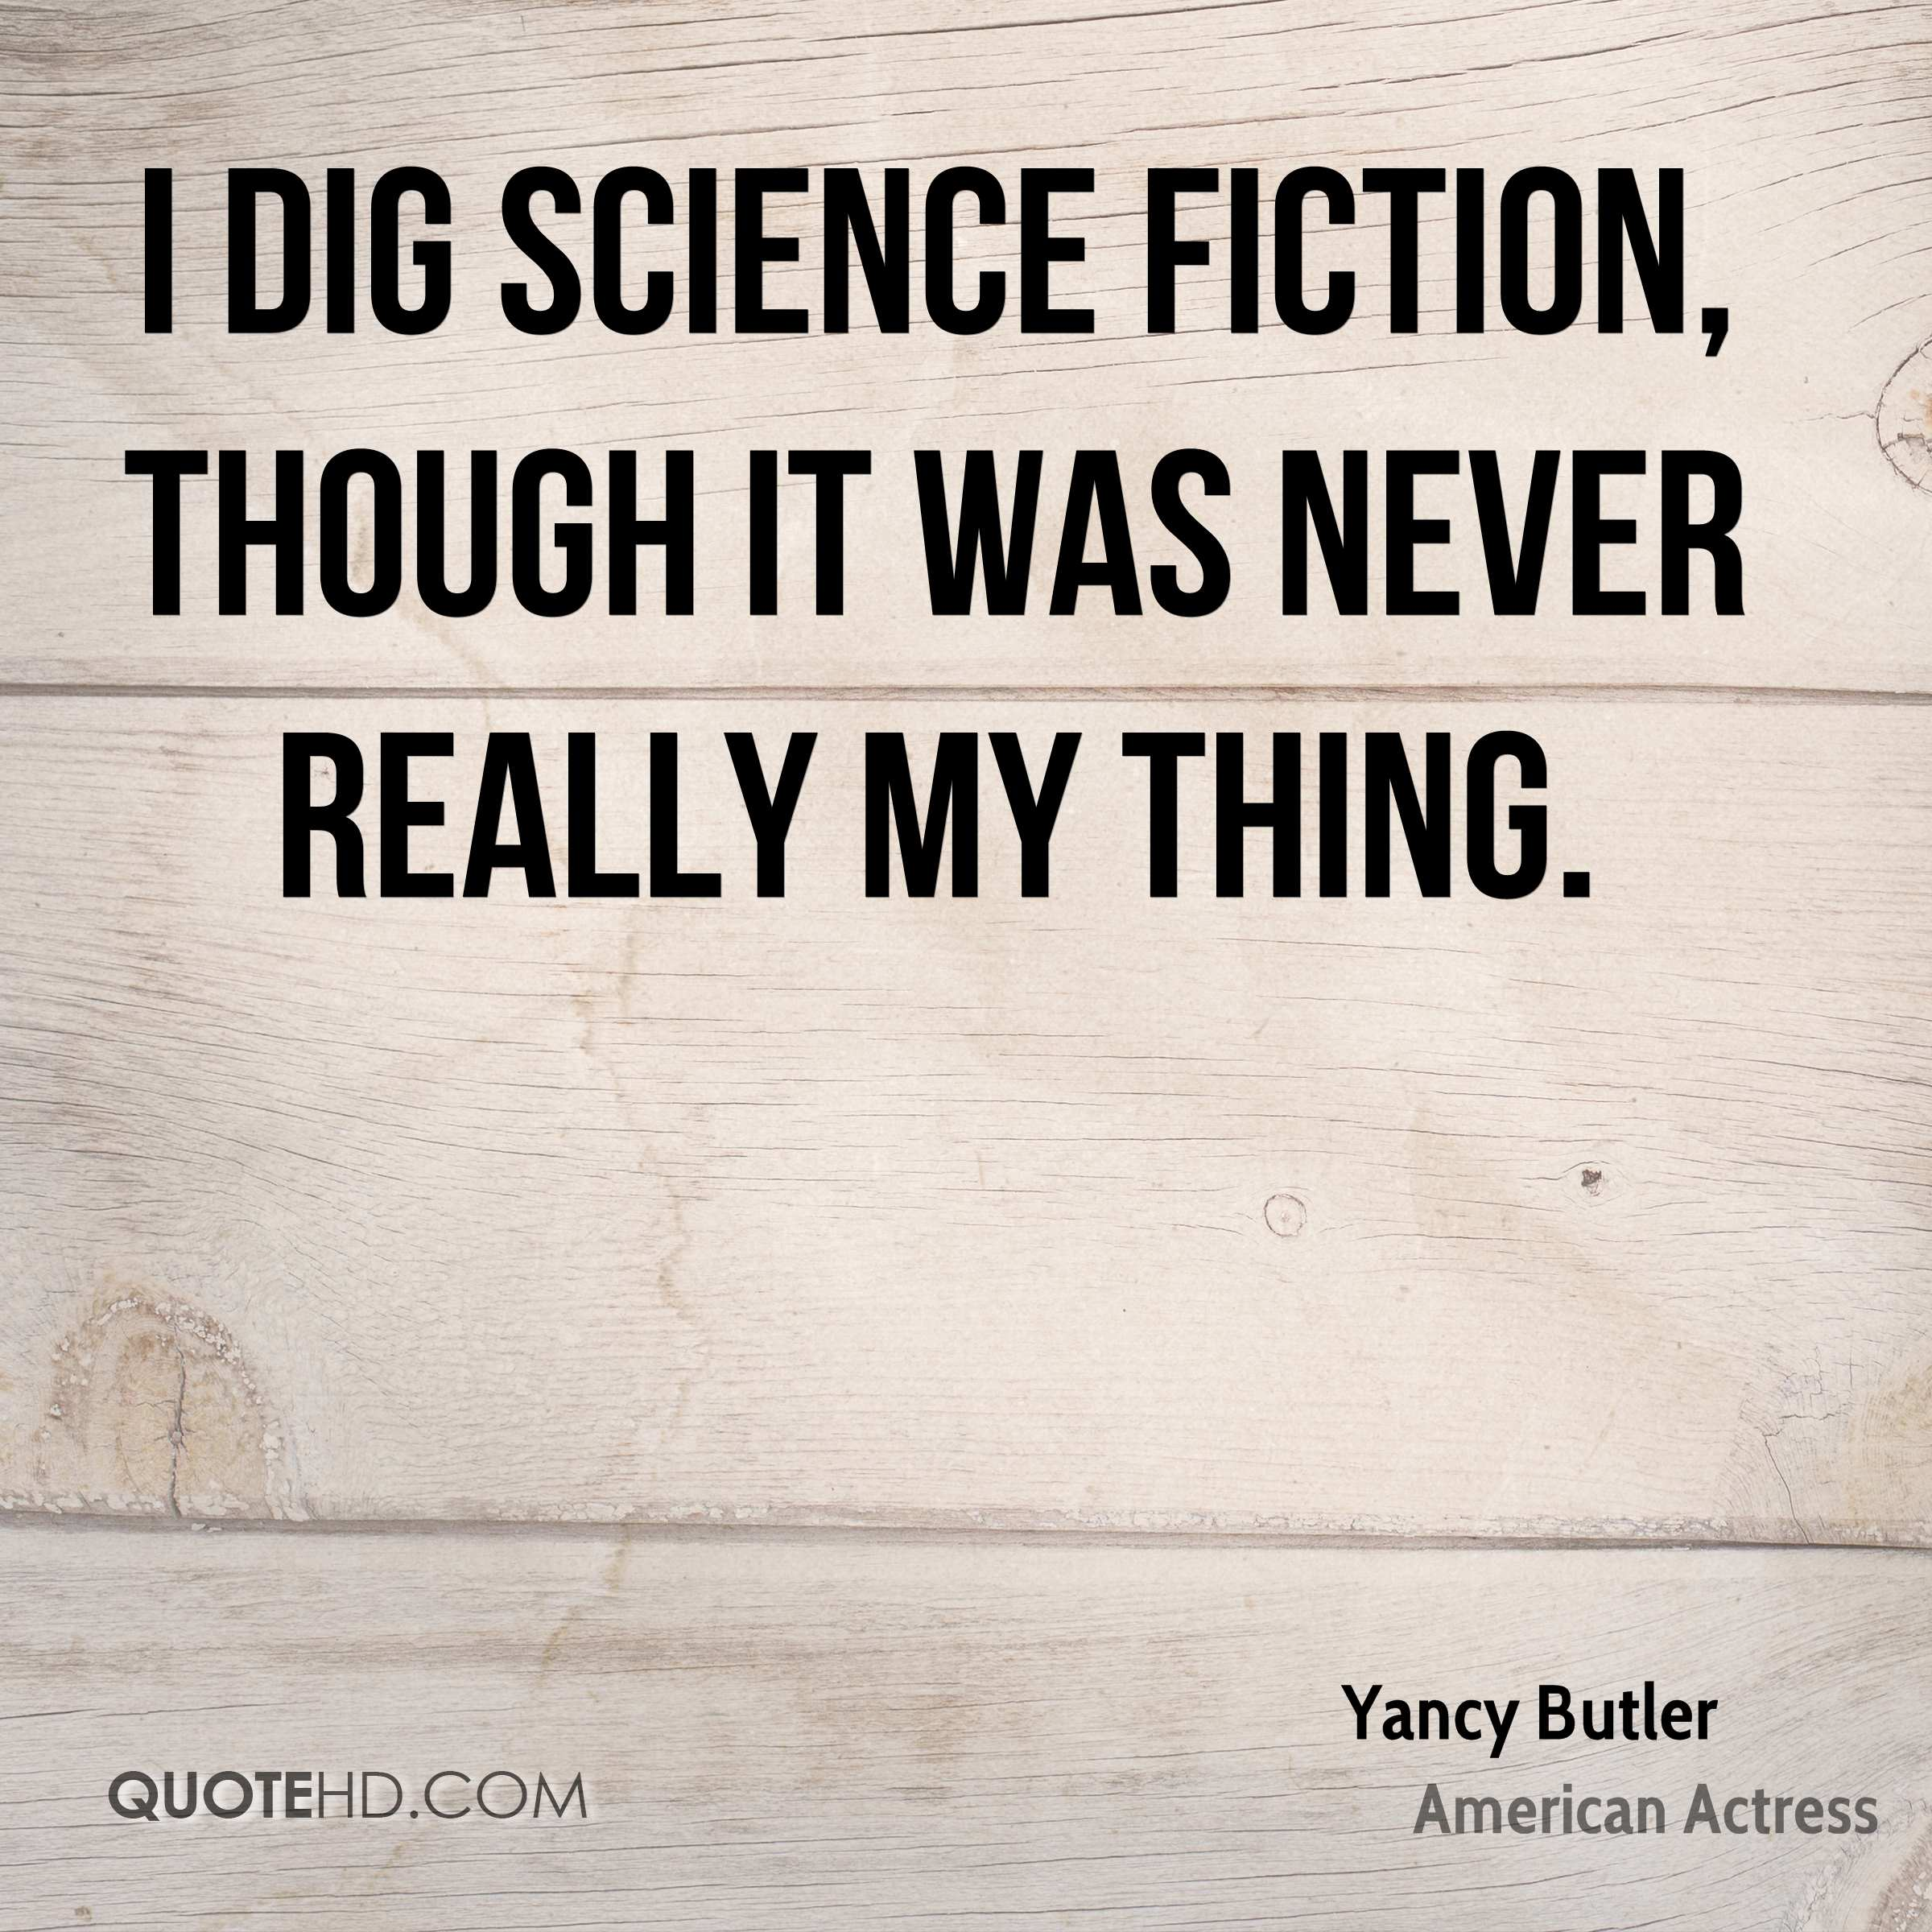 I dig science fiction, though it was never really my thing.